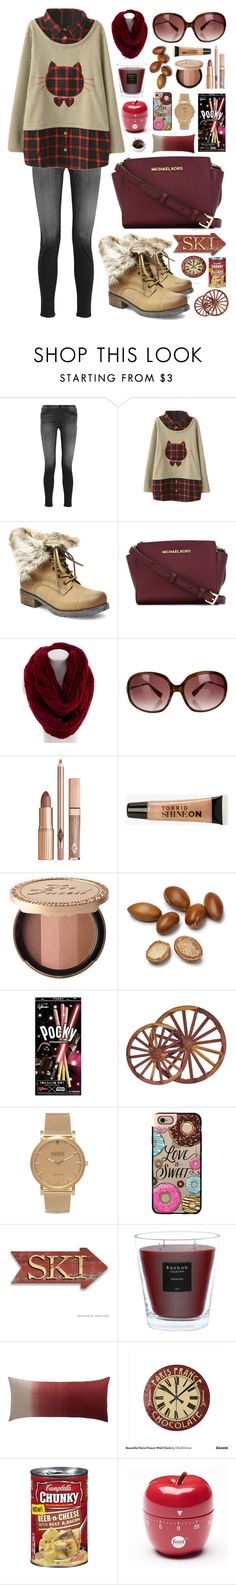 """Untitled #331"" by nadiahirbah288 ❤ liked on Polyvore featuring J Brand, Steve Madden, MICHAEL Michael Kors, Essie, Oliver Peoples, Torrid, DutchCrafters, Shore Projects, Casetify and Baobab Collection"